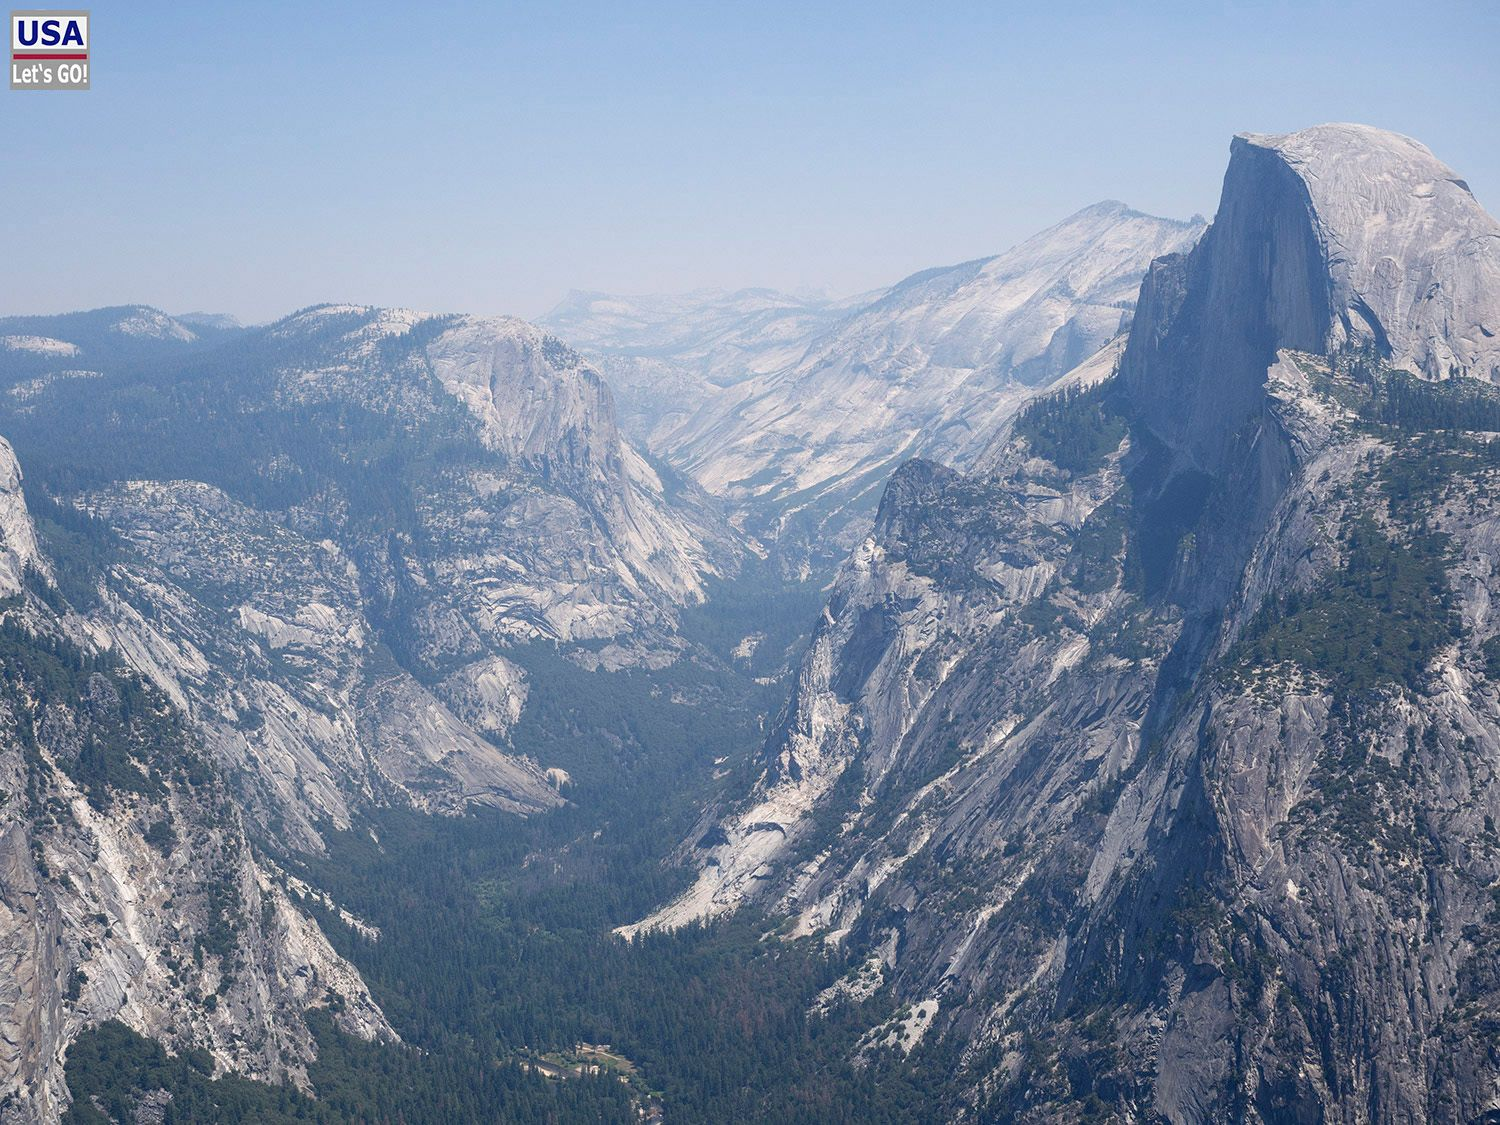 Glacier Point Yosemite National Park